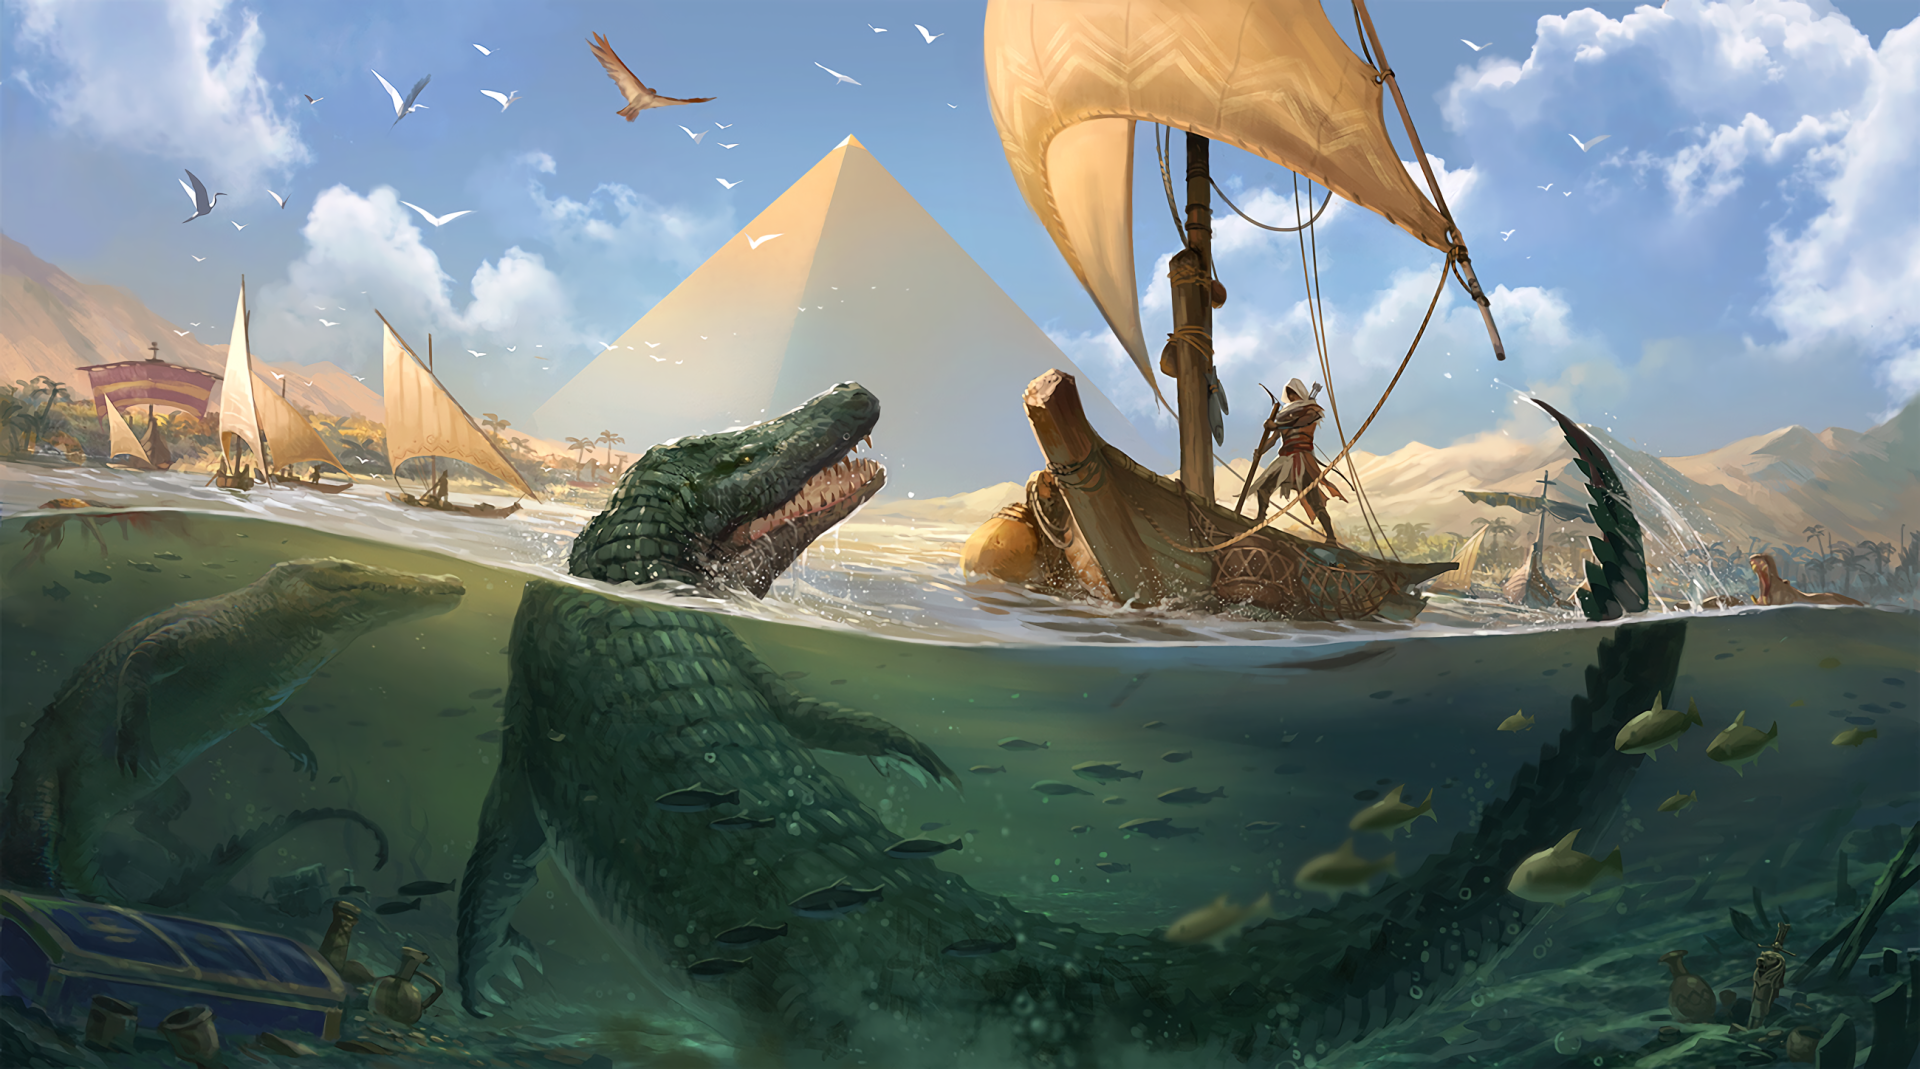 Video Game - Assassin's Creed Origins  Bird Crocodile Boat Bayek Of Siwa Wallpaper